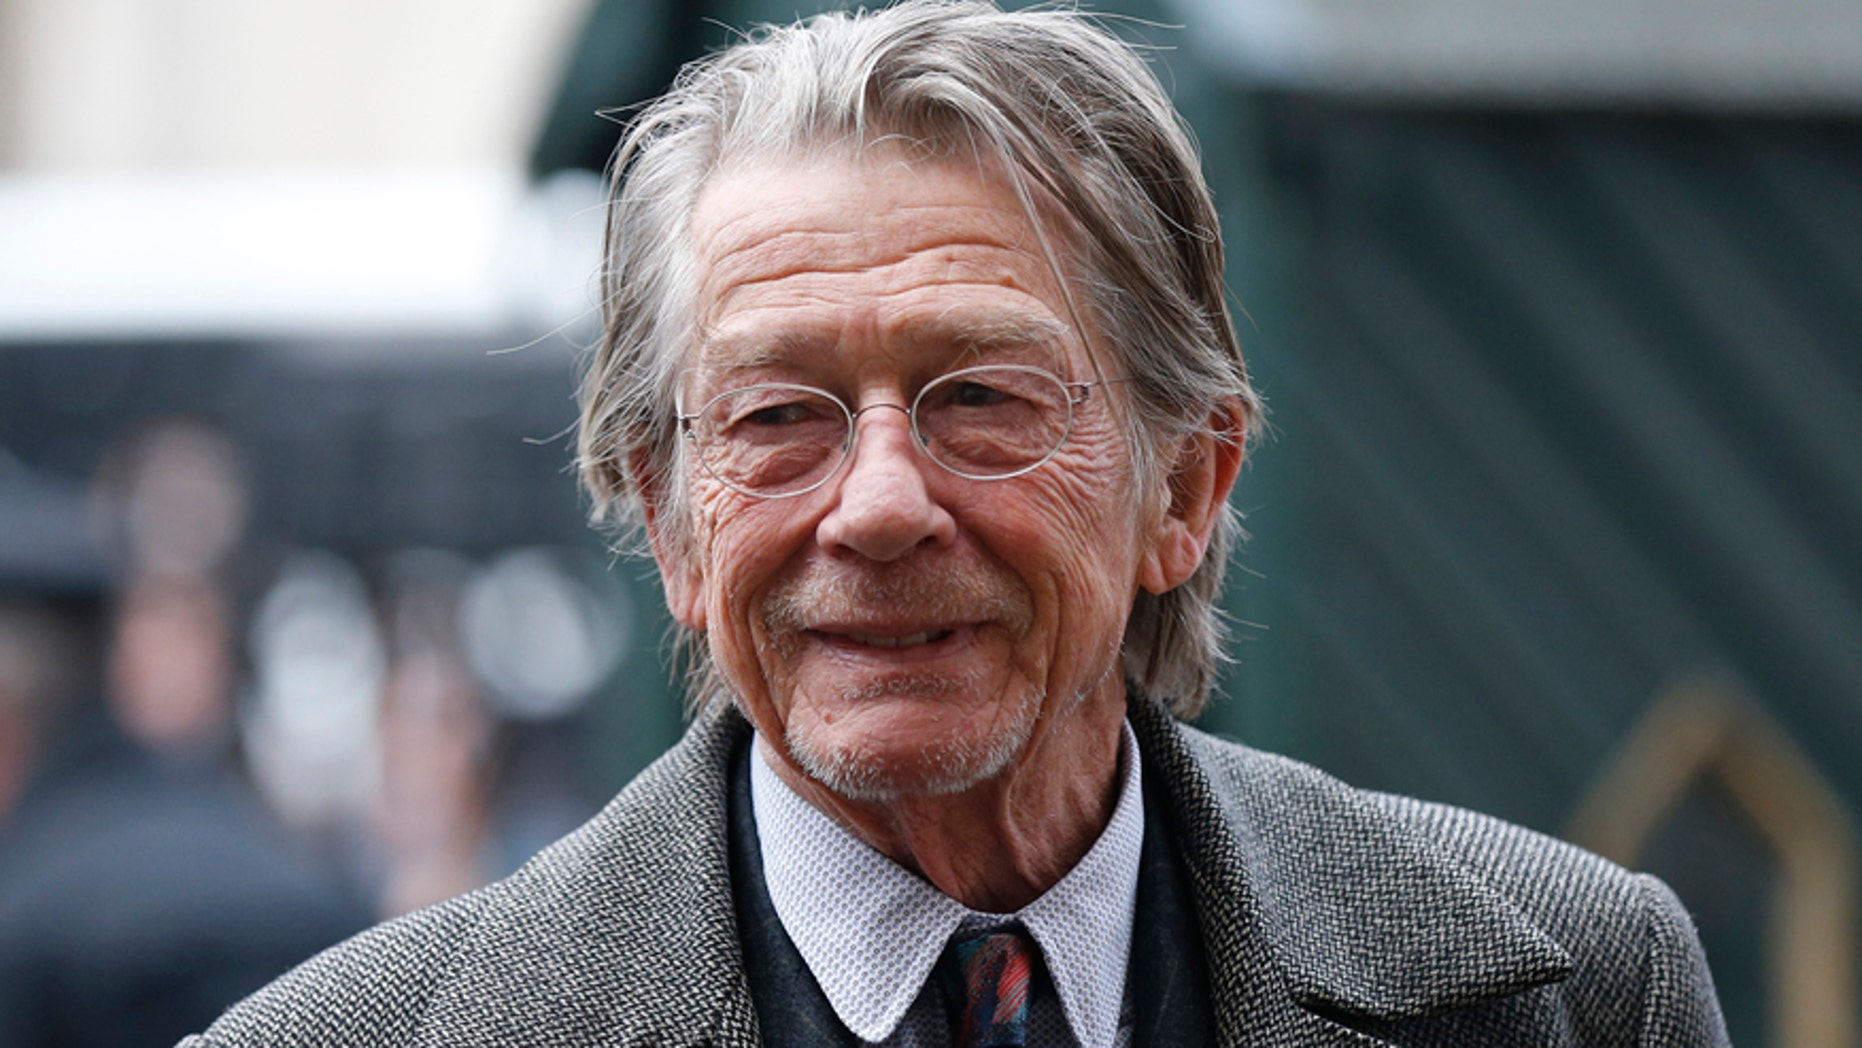 Actor John Hurt arrives for a memorial service for actor and director Richard Attenborough.